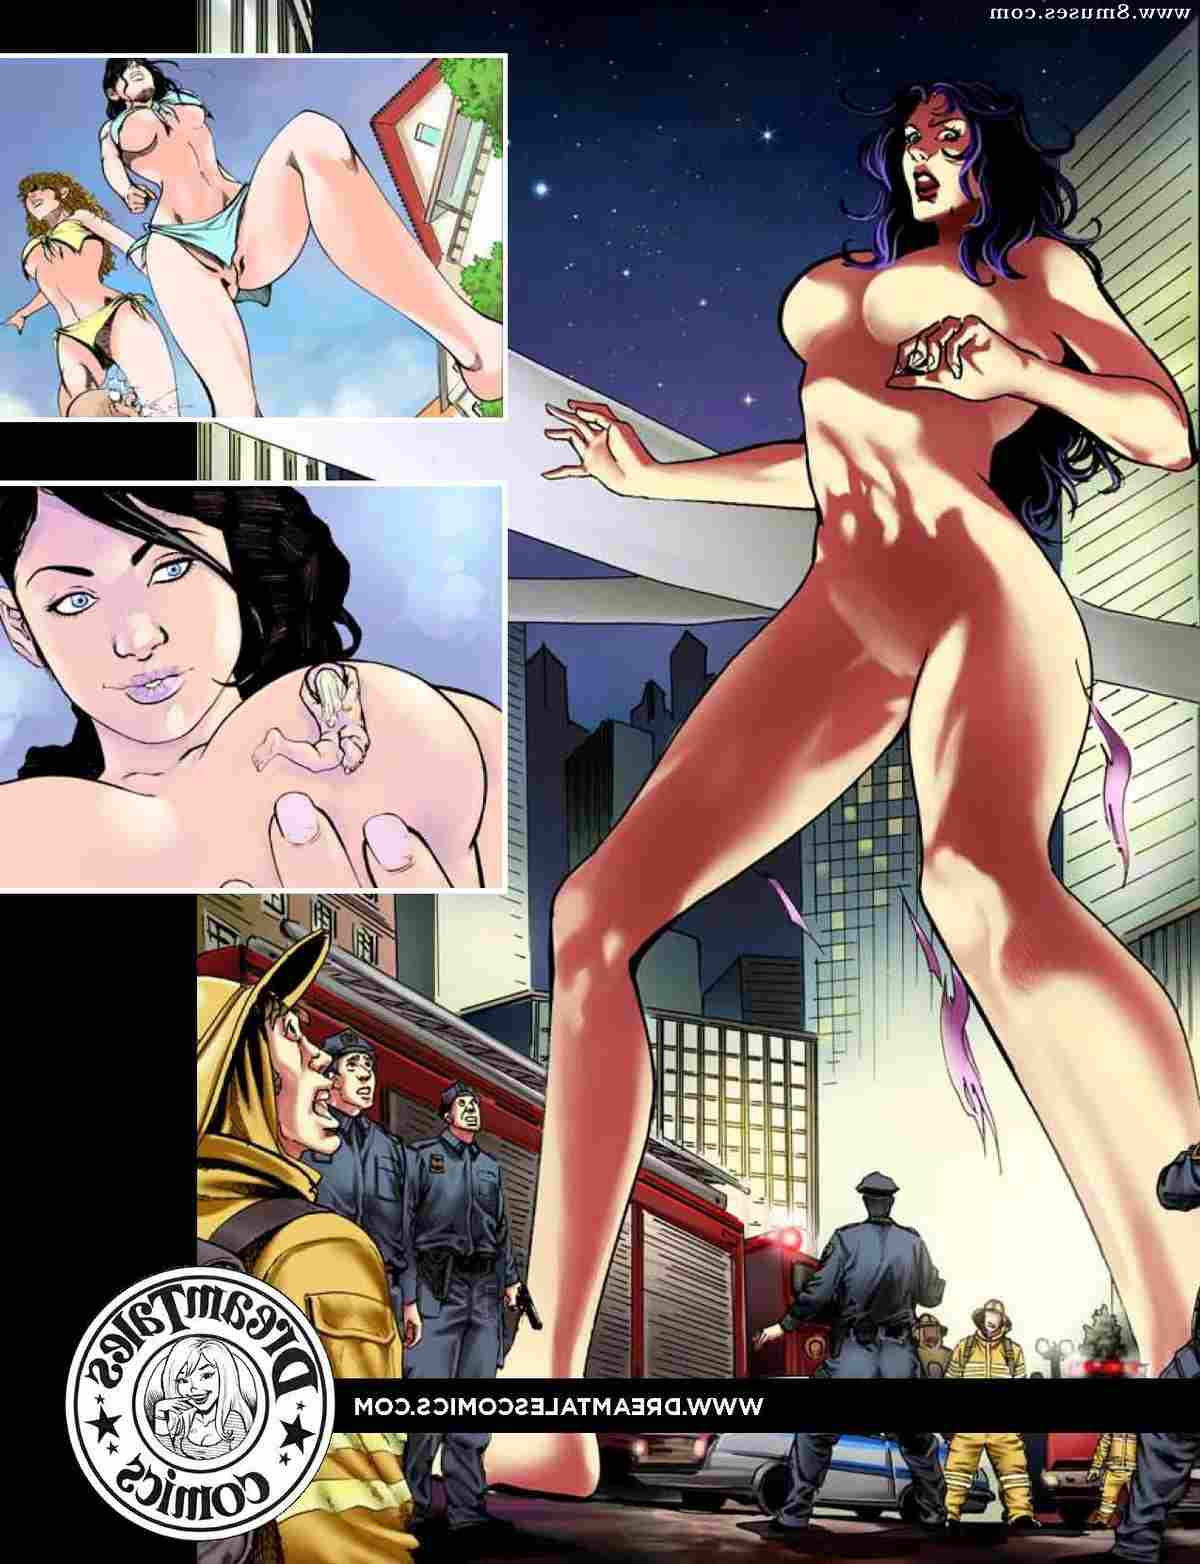 DreamTales-Comics/Film-Strips Film_Strips__8muses_-_Sex_and_Porn_Comics_34.jpg